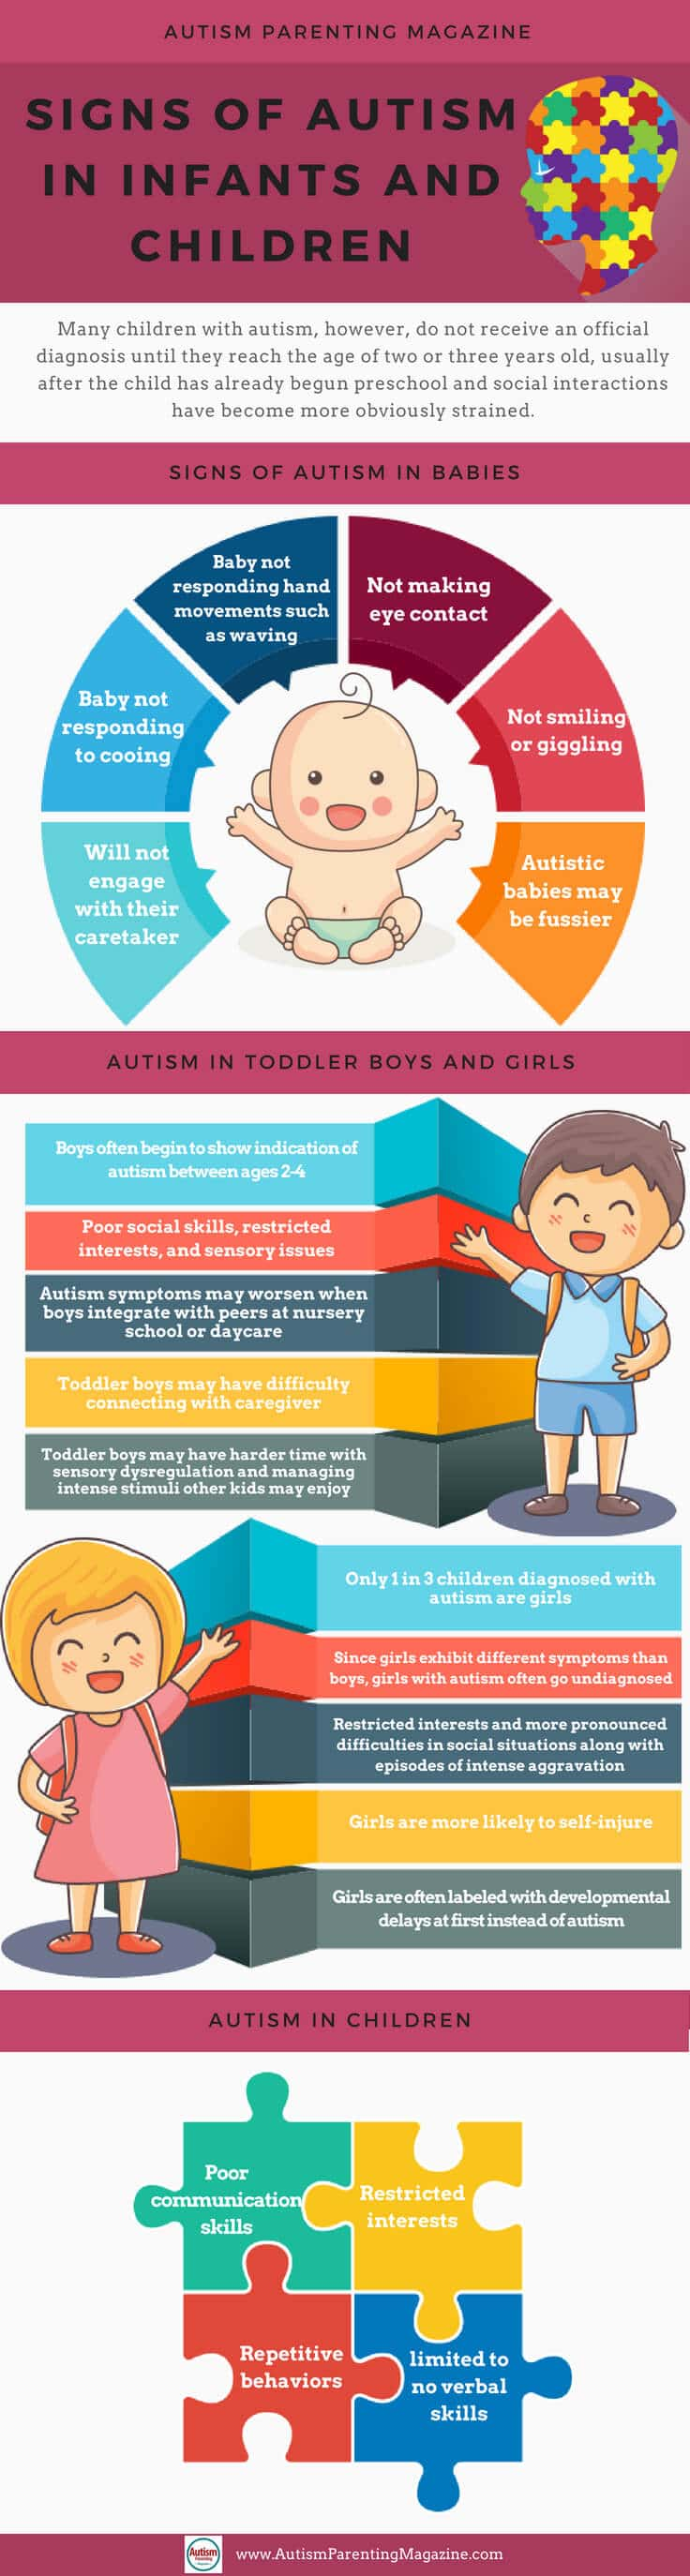 Download our Free Guide - Autism Signs in Babies and Children https://www.autismparentingmagazine.com/signs-of-autism-children